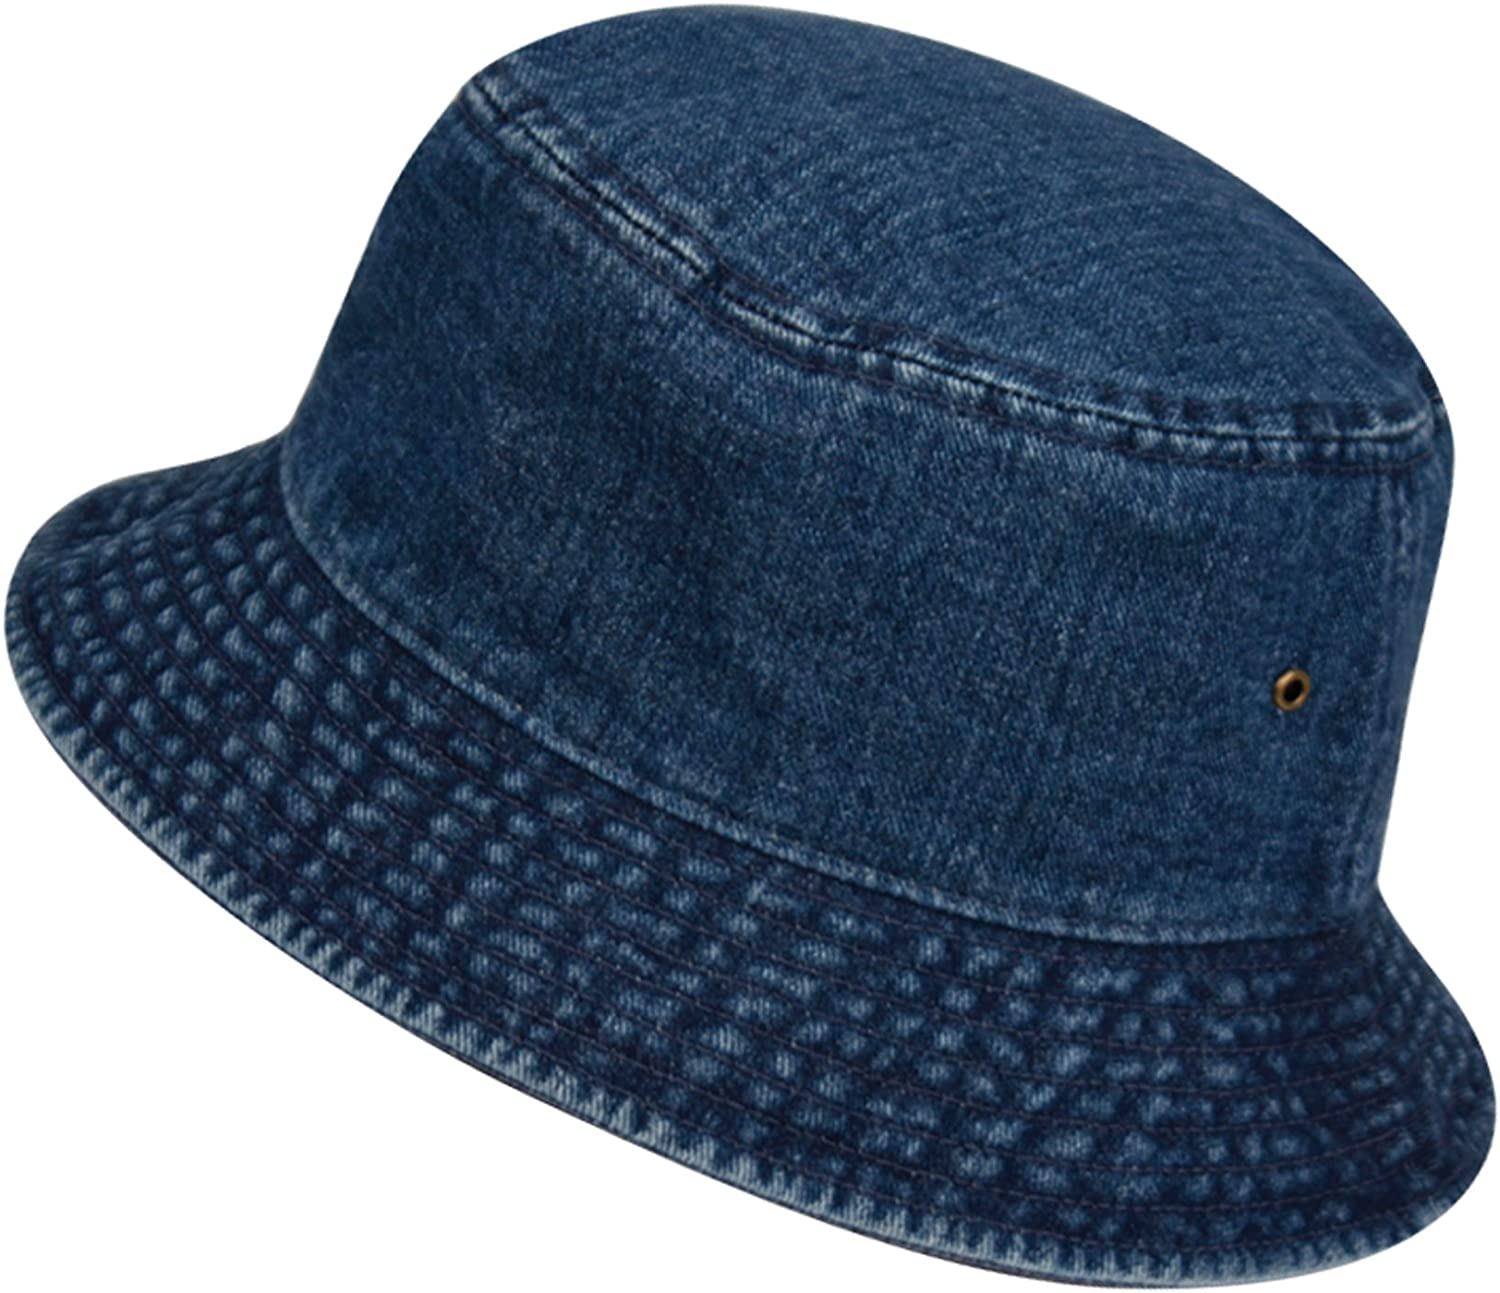 Packable Thinking of You Gift Cute Denim Bucket Hat for Women Handmade in the USA Simple Travel and Vacation Hat